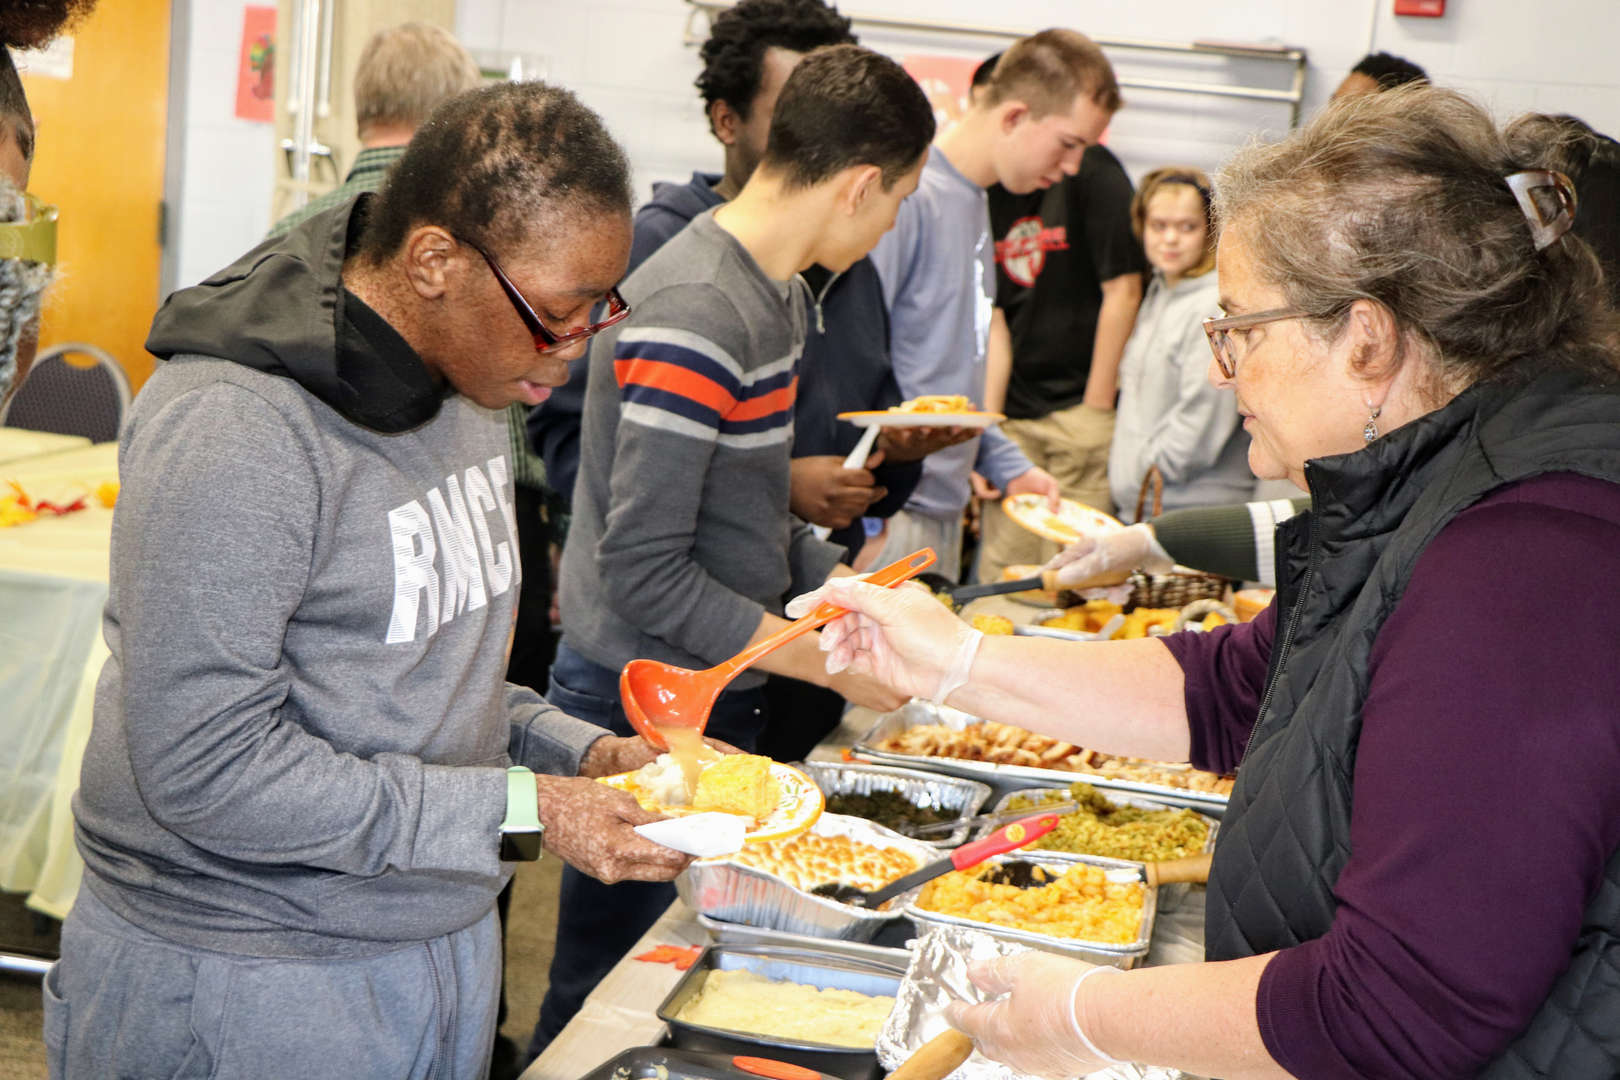 staff and faculty served by colleagues at Thanksgiving luncheon